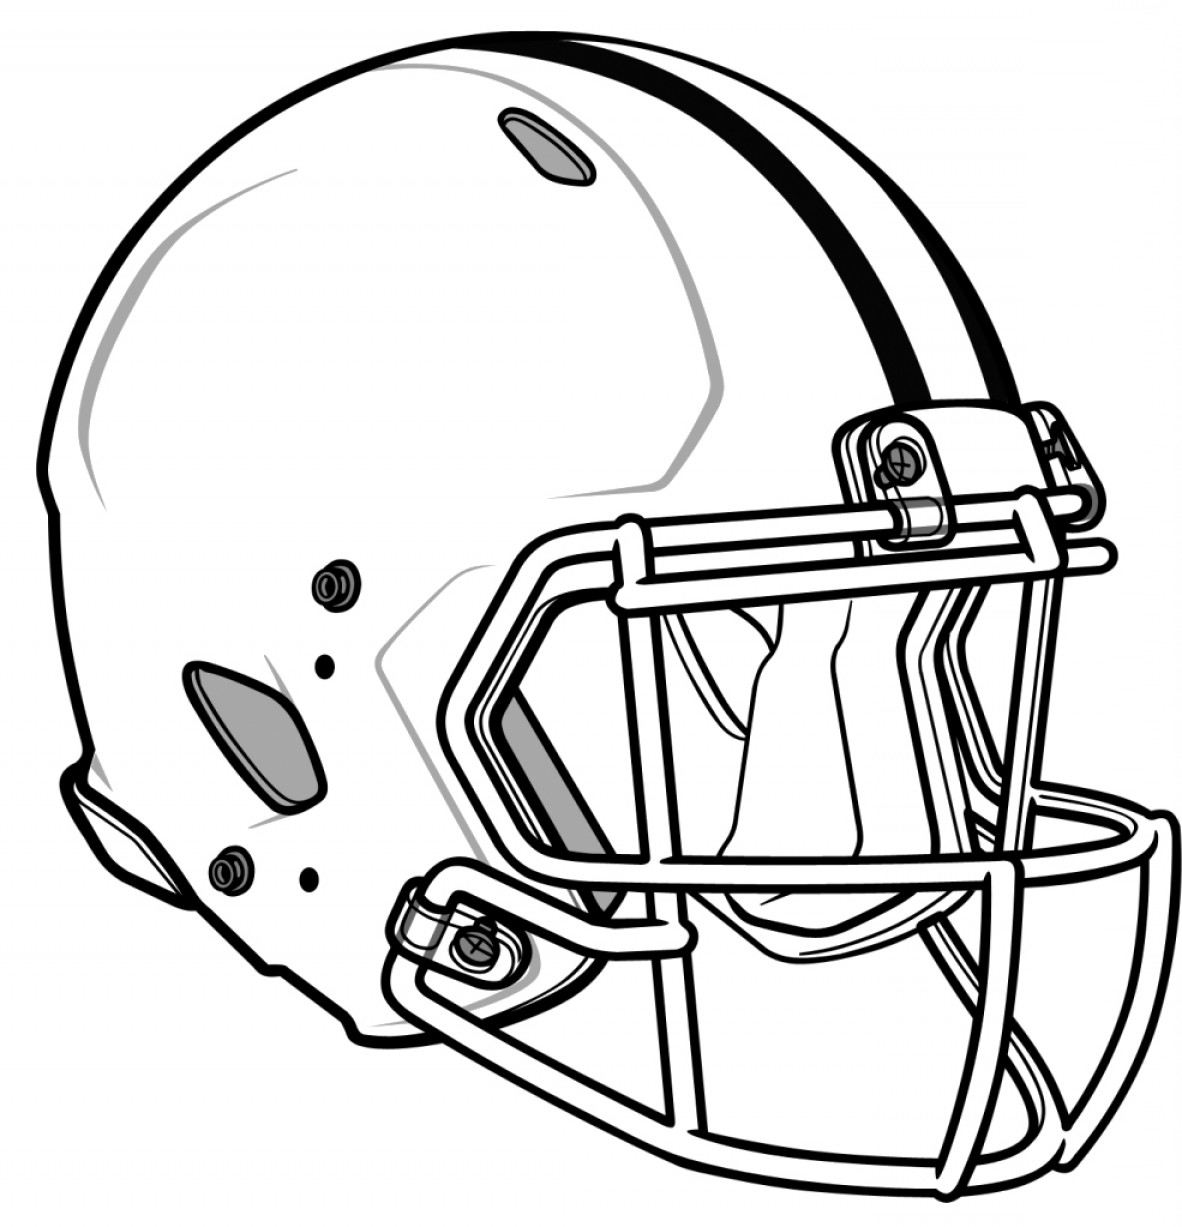 Seahawks Helmet Vector: How To Draw A Football Helmet